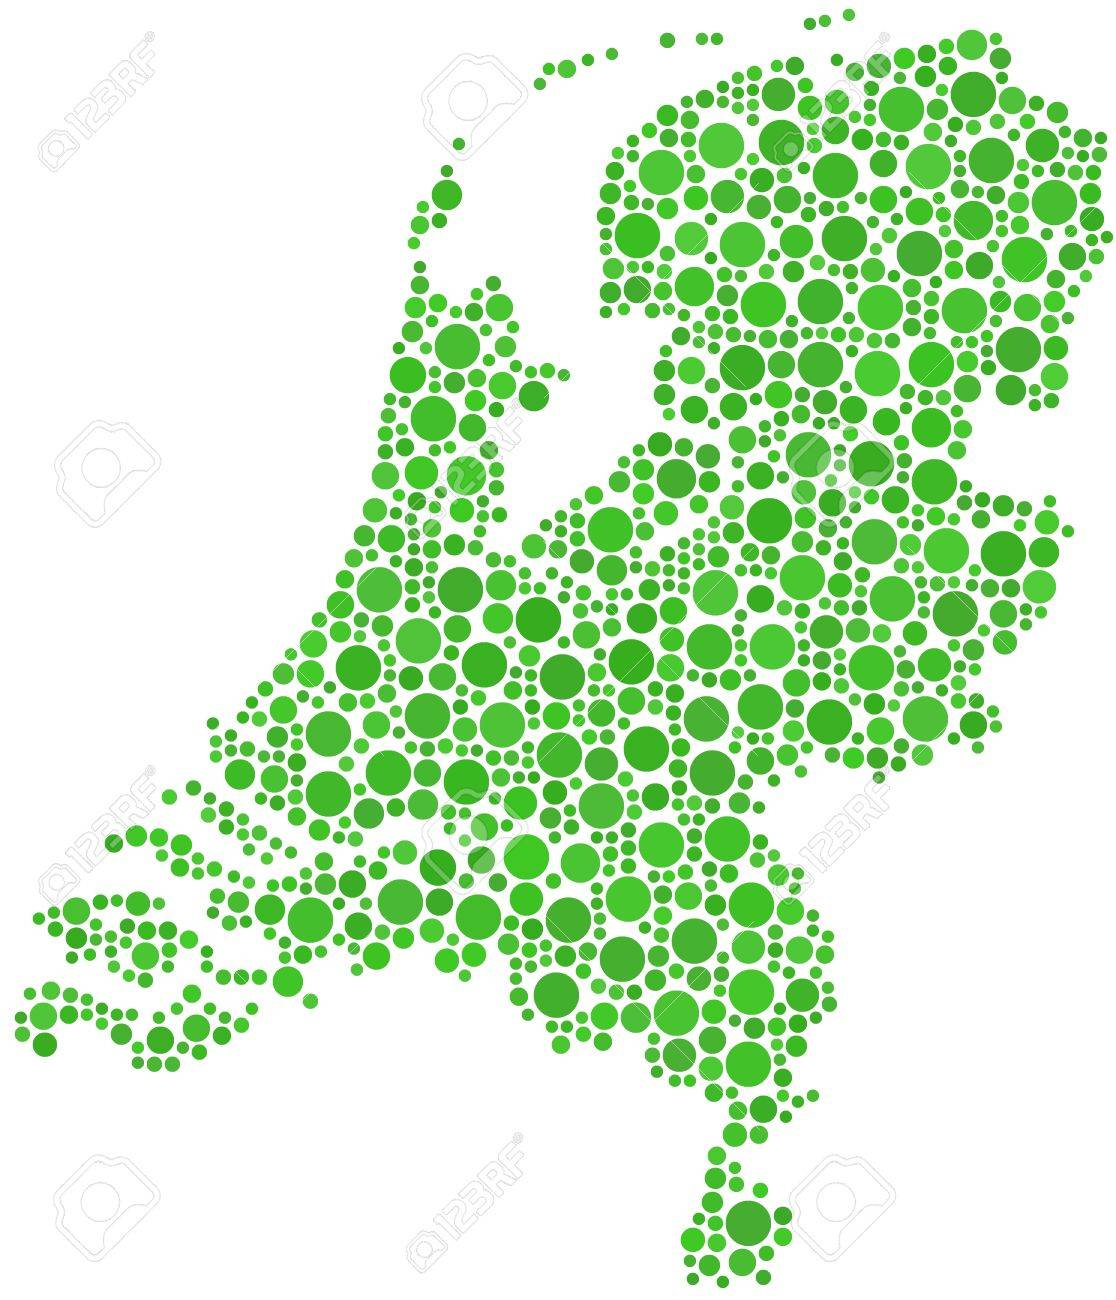 Holland Europe Map.Map Of Holland Europe In A Mosaic Of Circles Royalty Free Cliparts